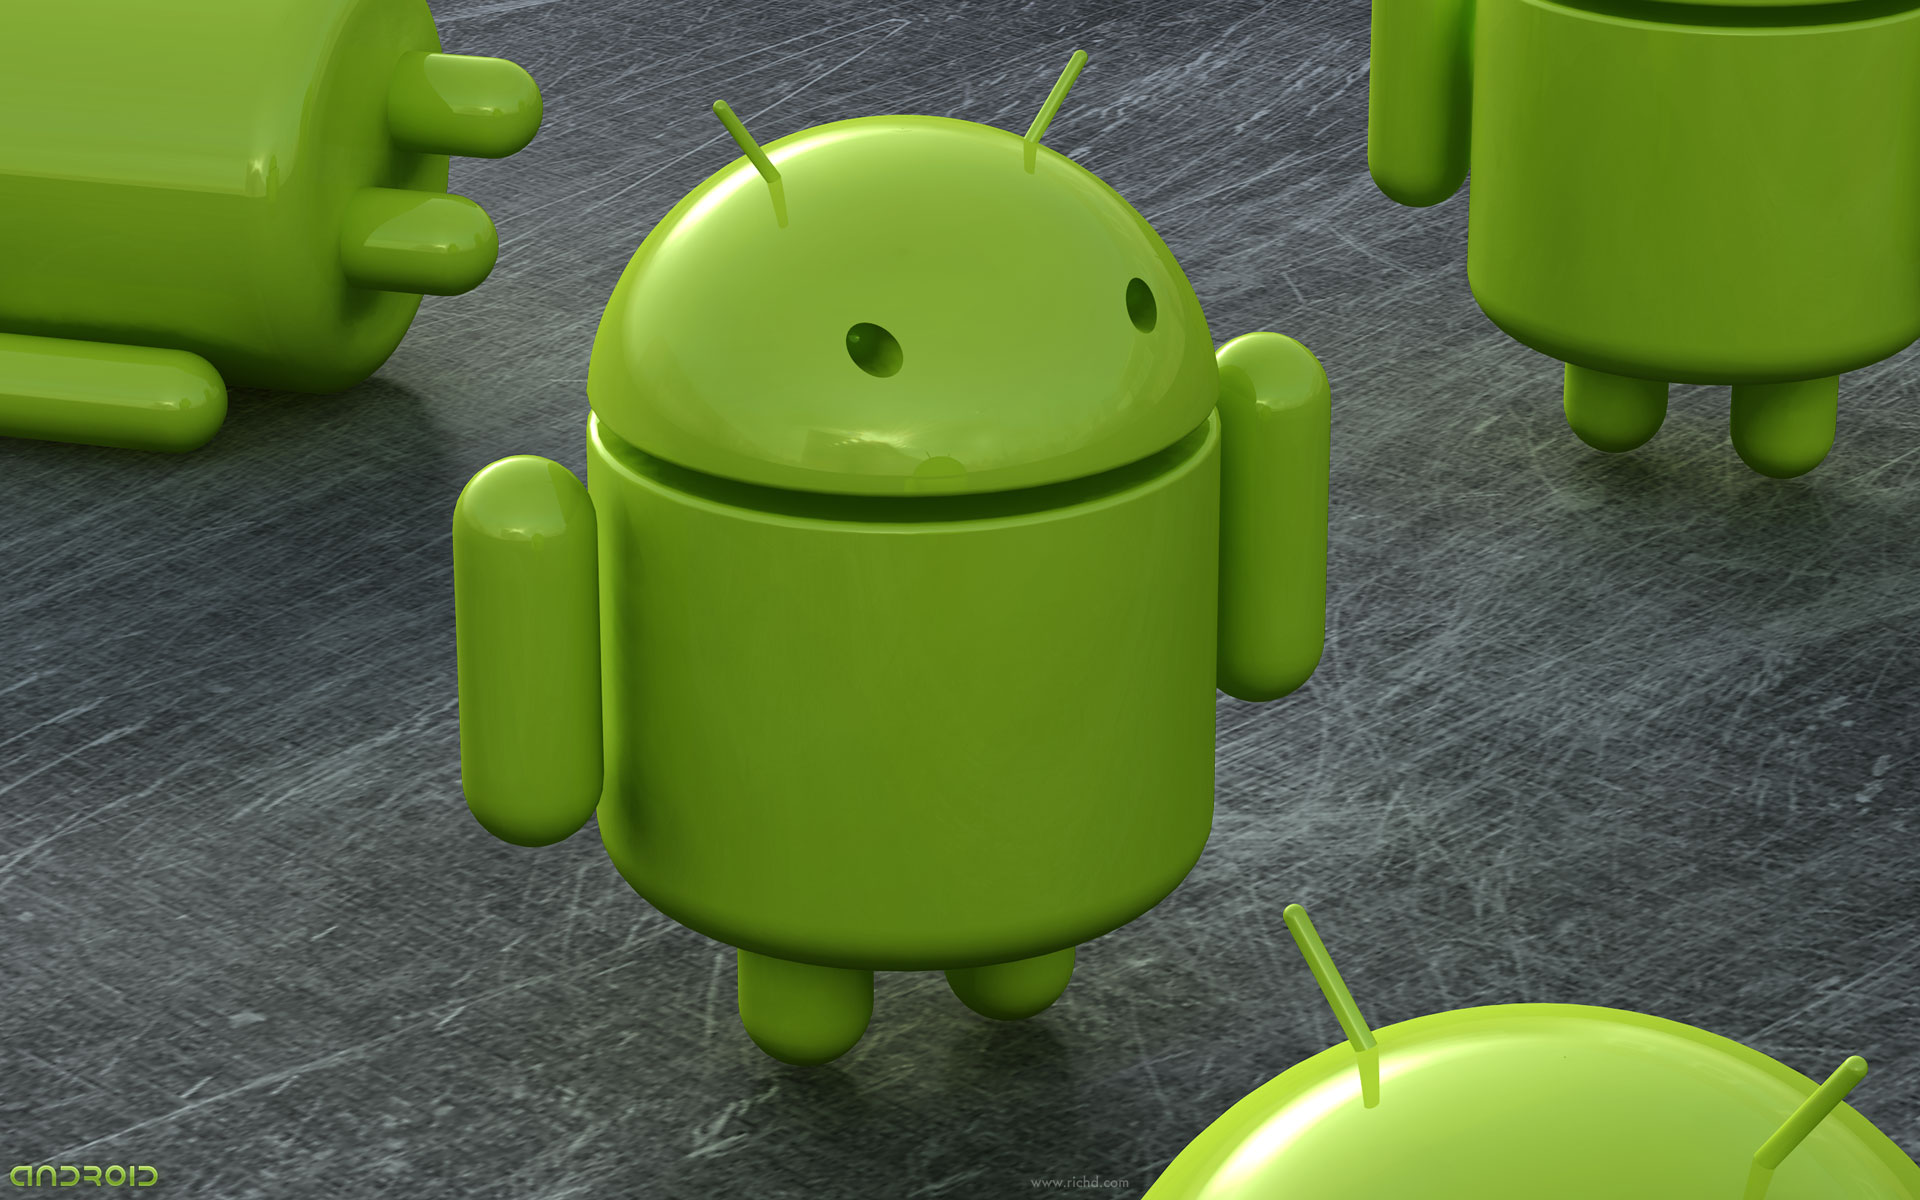 Robô verde do Google Android